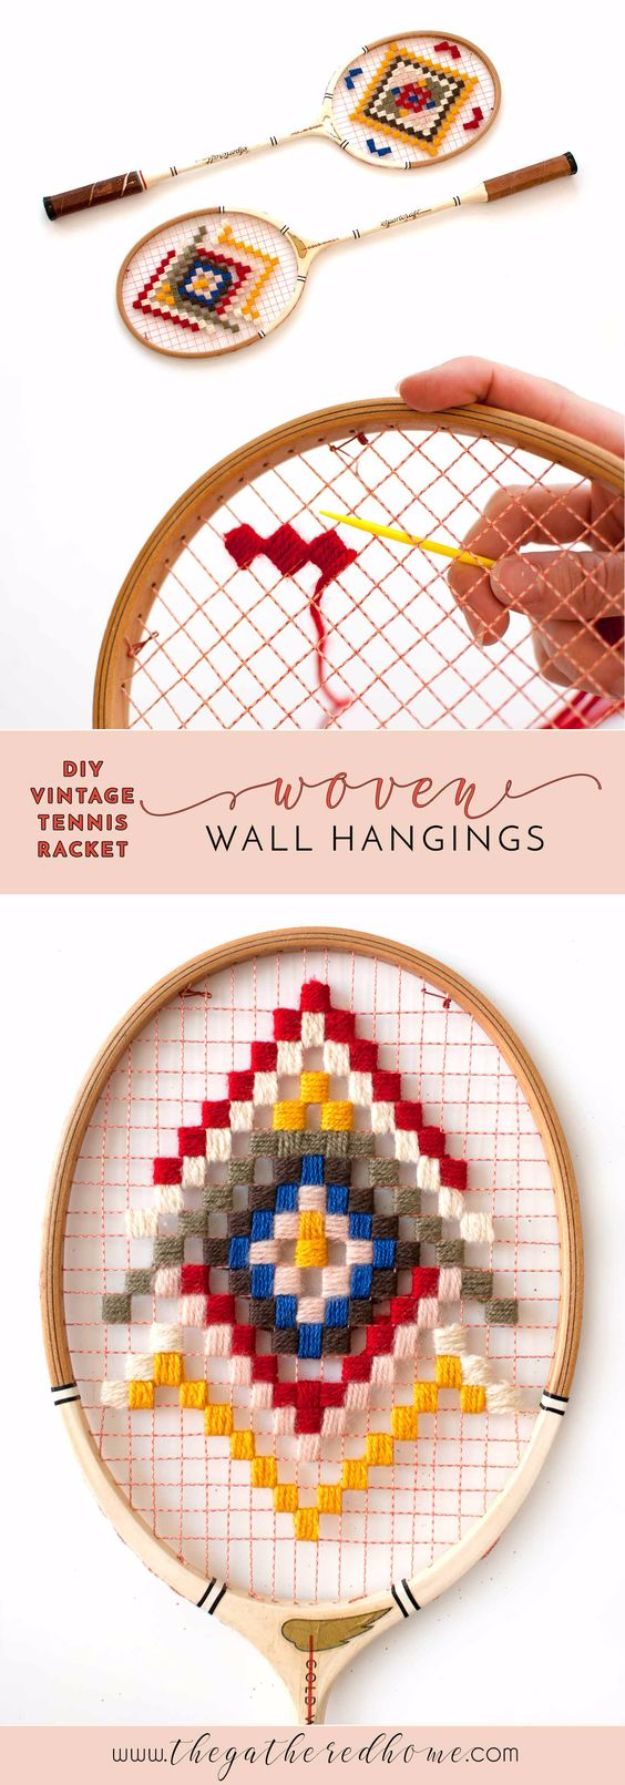 DIY Ideas With Yarn and Best Yarn Crafts - DIY Vintage Tennis Racket Wall Hangings - Wall Hangings, Easy Dream Catchers, Crochet Ideas for Teens, Adults and Kids - Knitting , No Sew and Weaving Projects Make Awesome Wall Art and Home Decor on A Budget